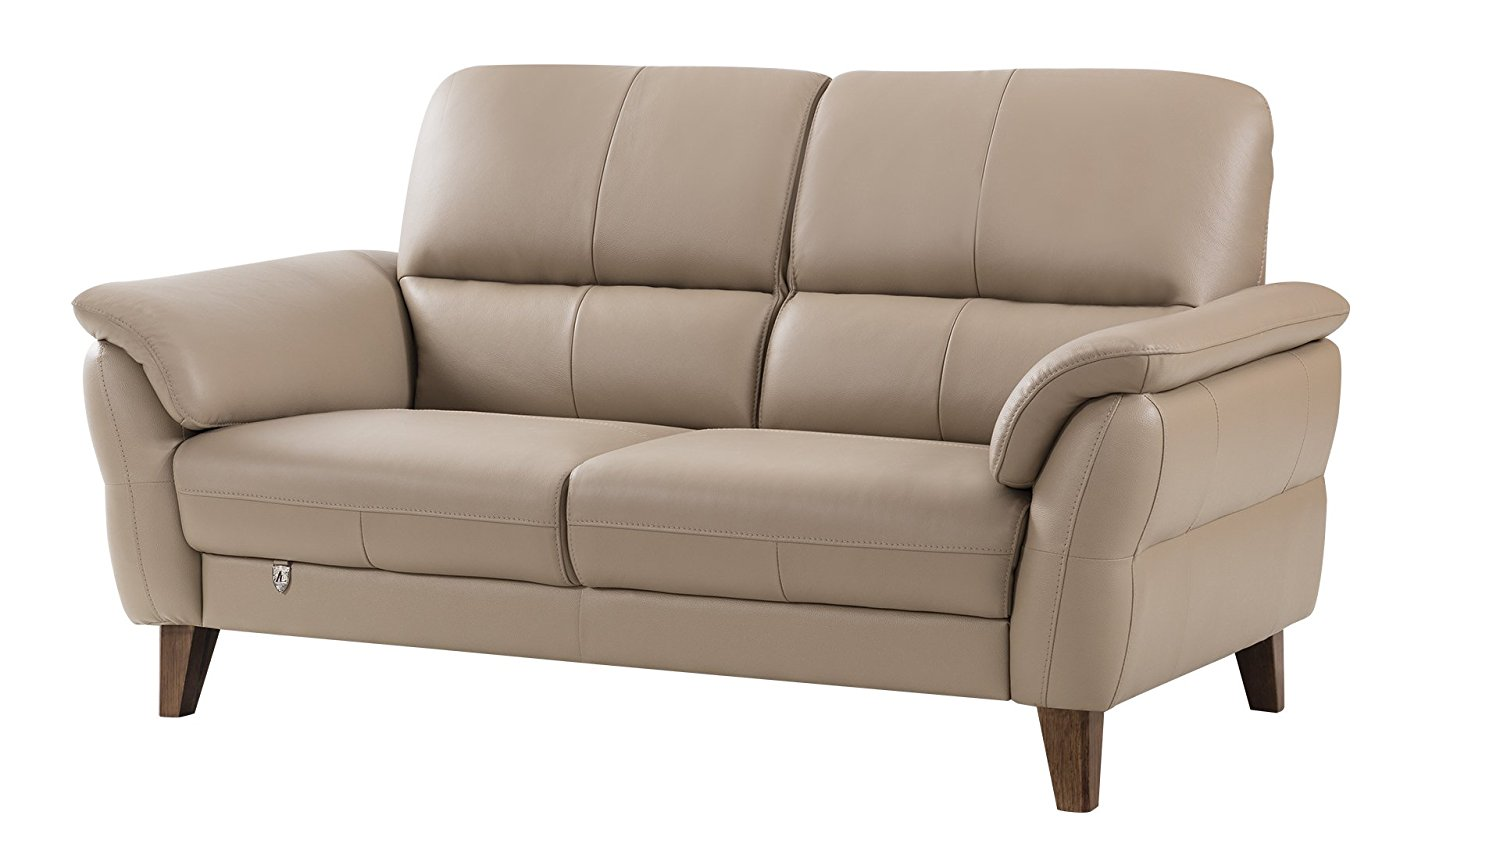 American Eagle Furniture King Collection Living Room Top Grain Italian Leather Loveseat, Tan